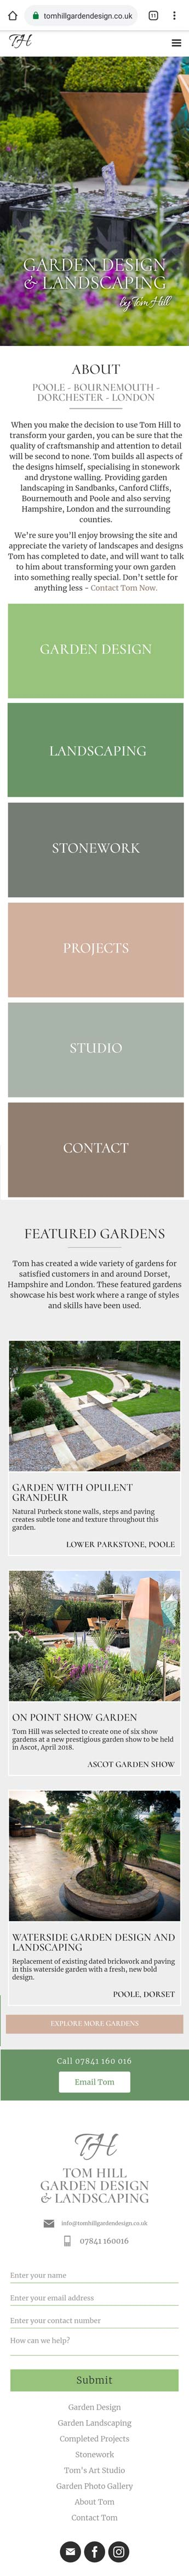 Gardener website design mobile screen shot image